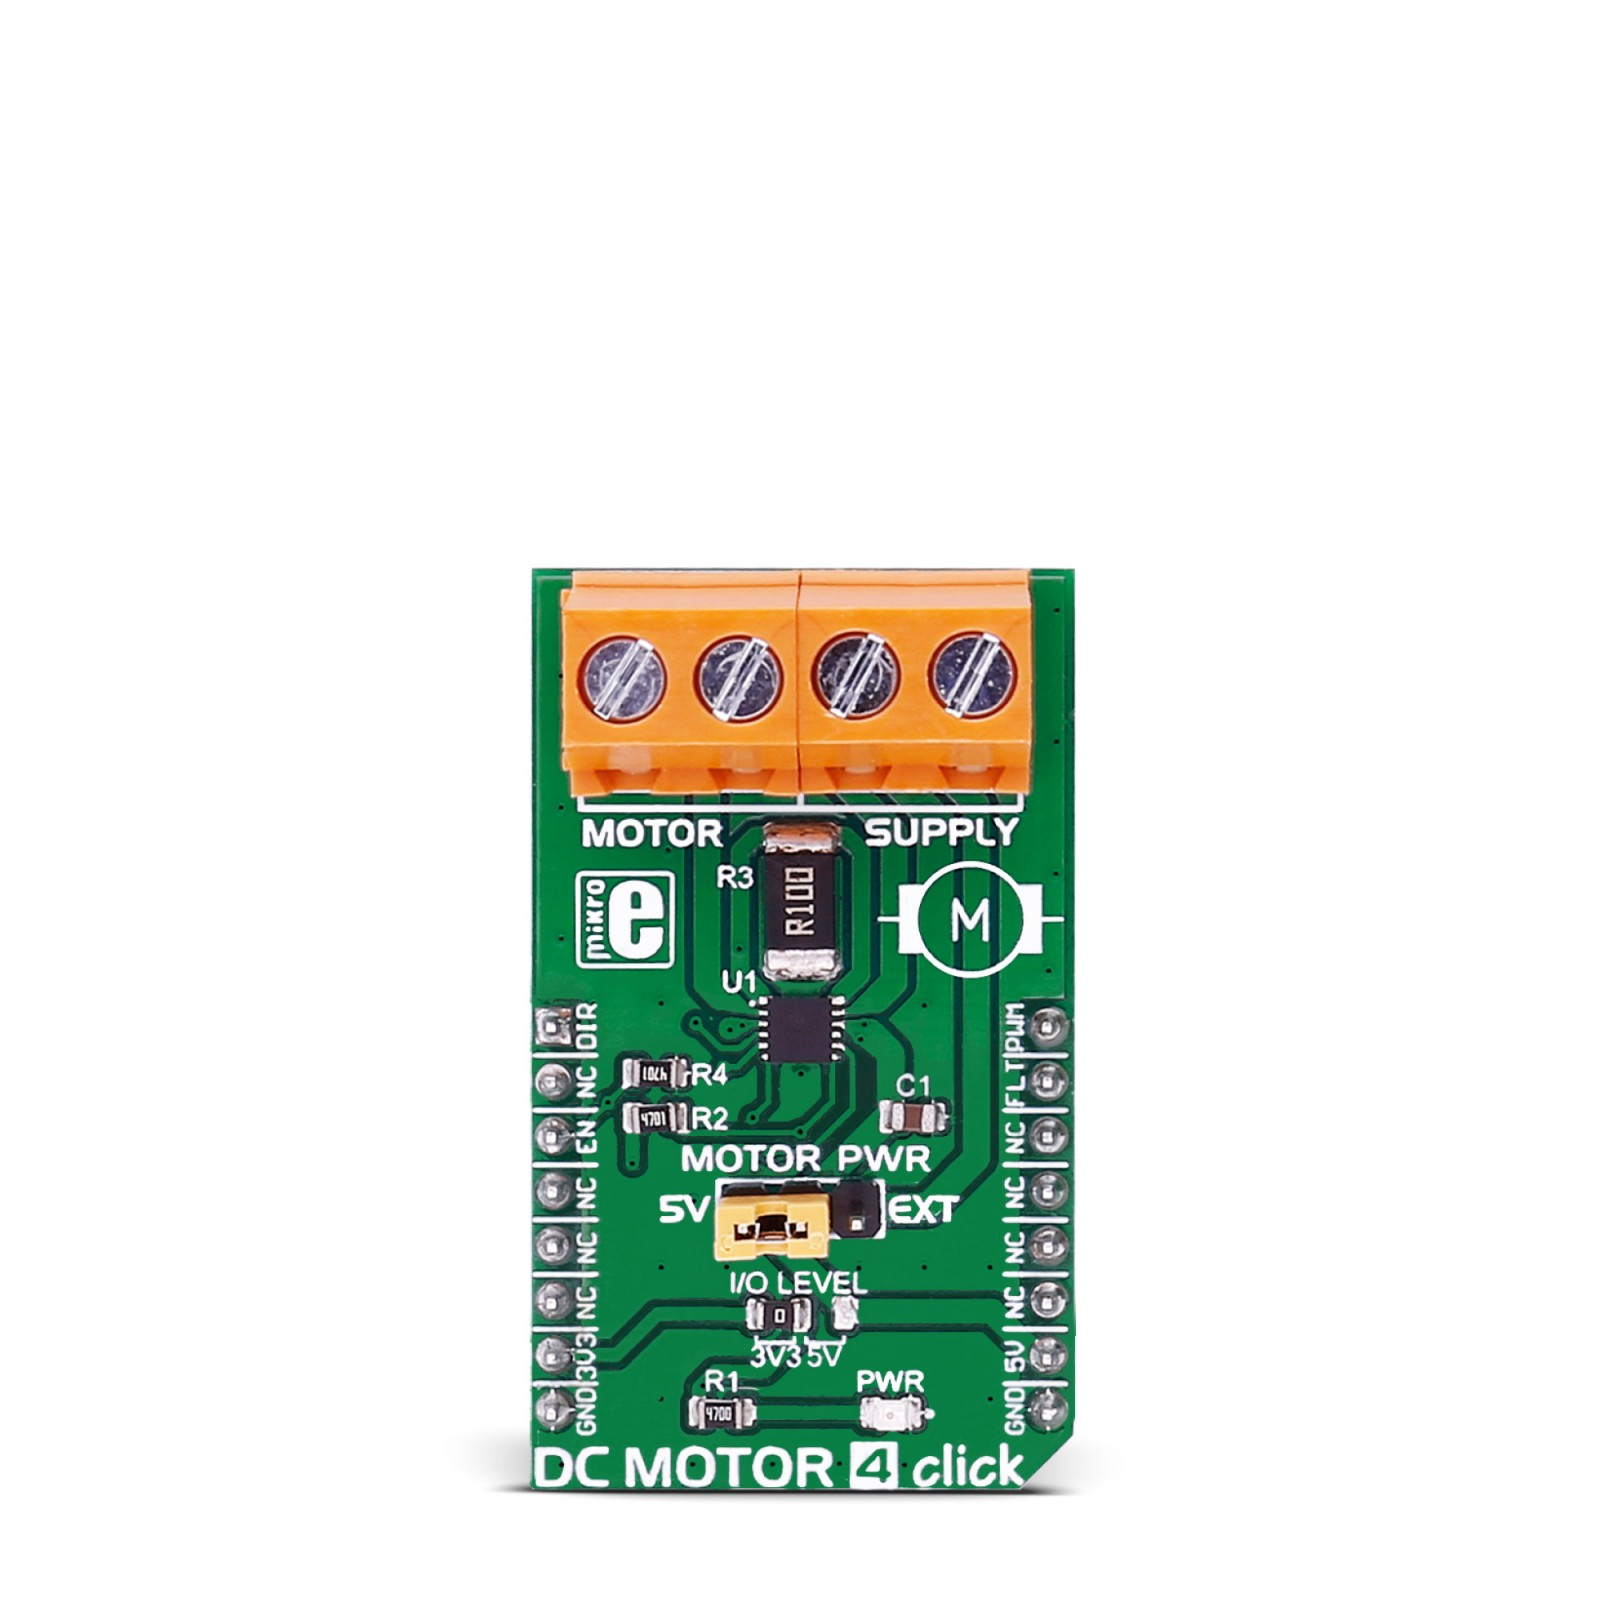 Dc Motor 4 Click Driving Motors Between 45v And 36v Behind Selecting Pwm Frequency For Speed Control Of A Mgctlbxnmzp Mgctlbxv5112 Mgctlbxlc Mgctlbxpprestashop